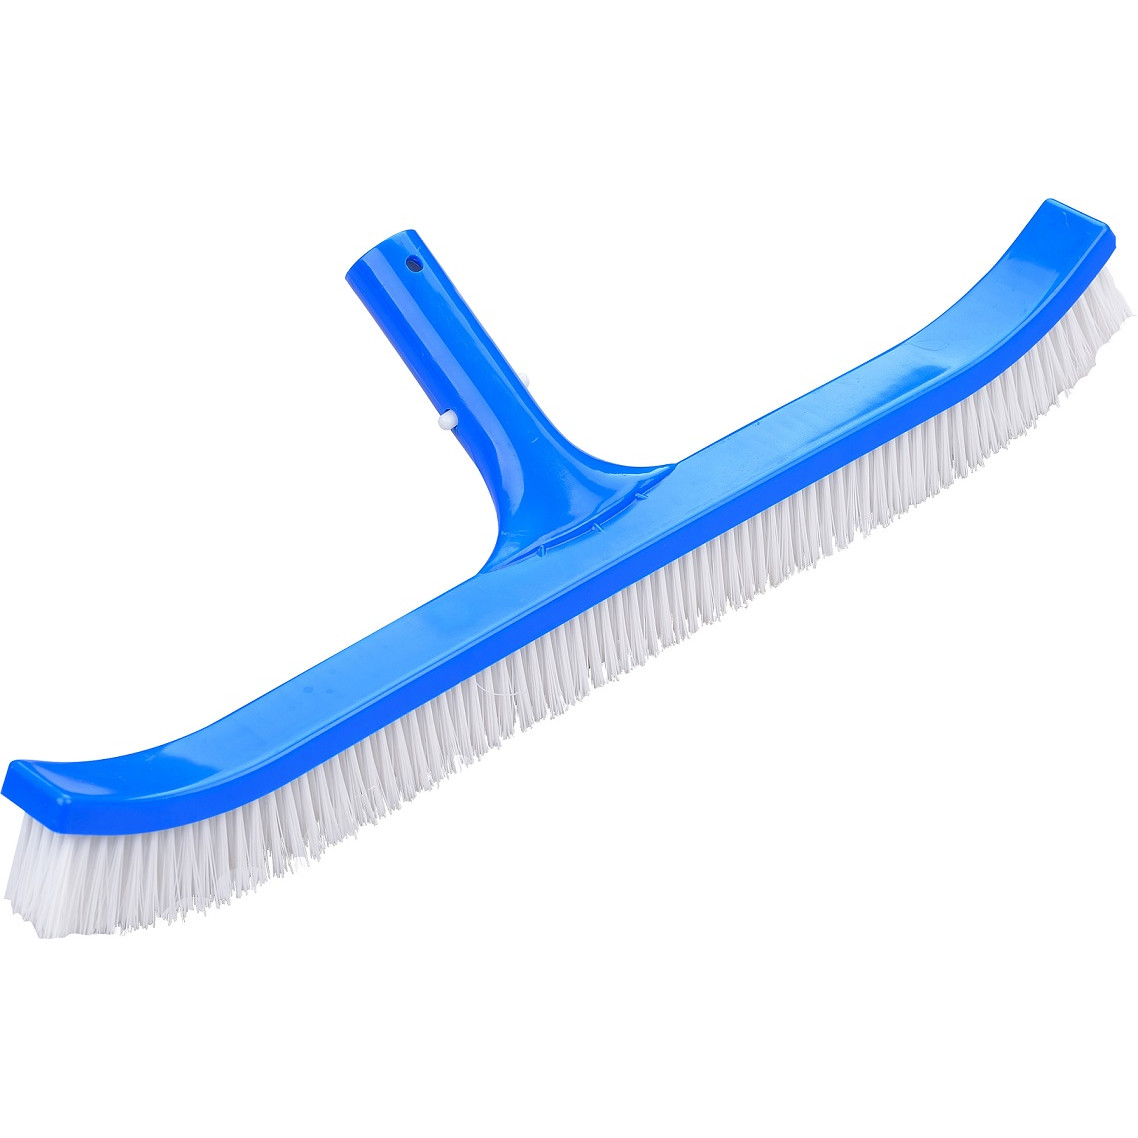 "Aqua First Curved 18"" Pool Brush for Swimming Pool Walls and Floors with Nylon Fiber Bristles, Lightweight Frame"